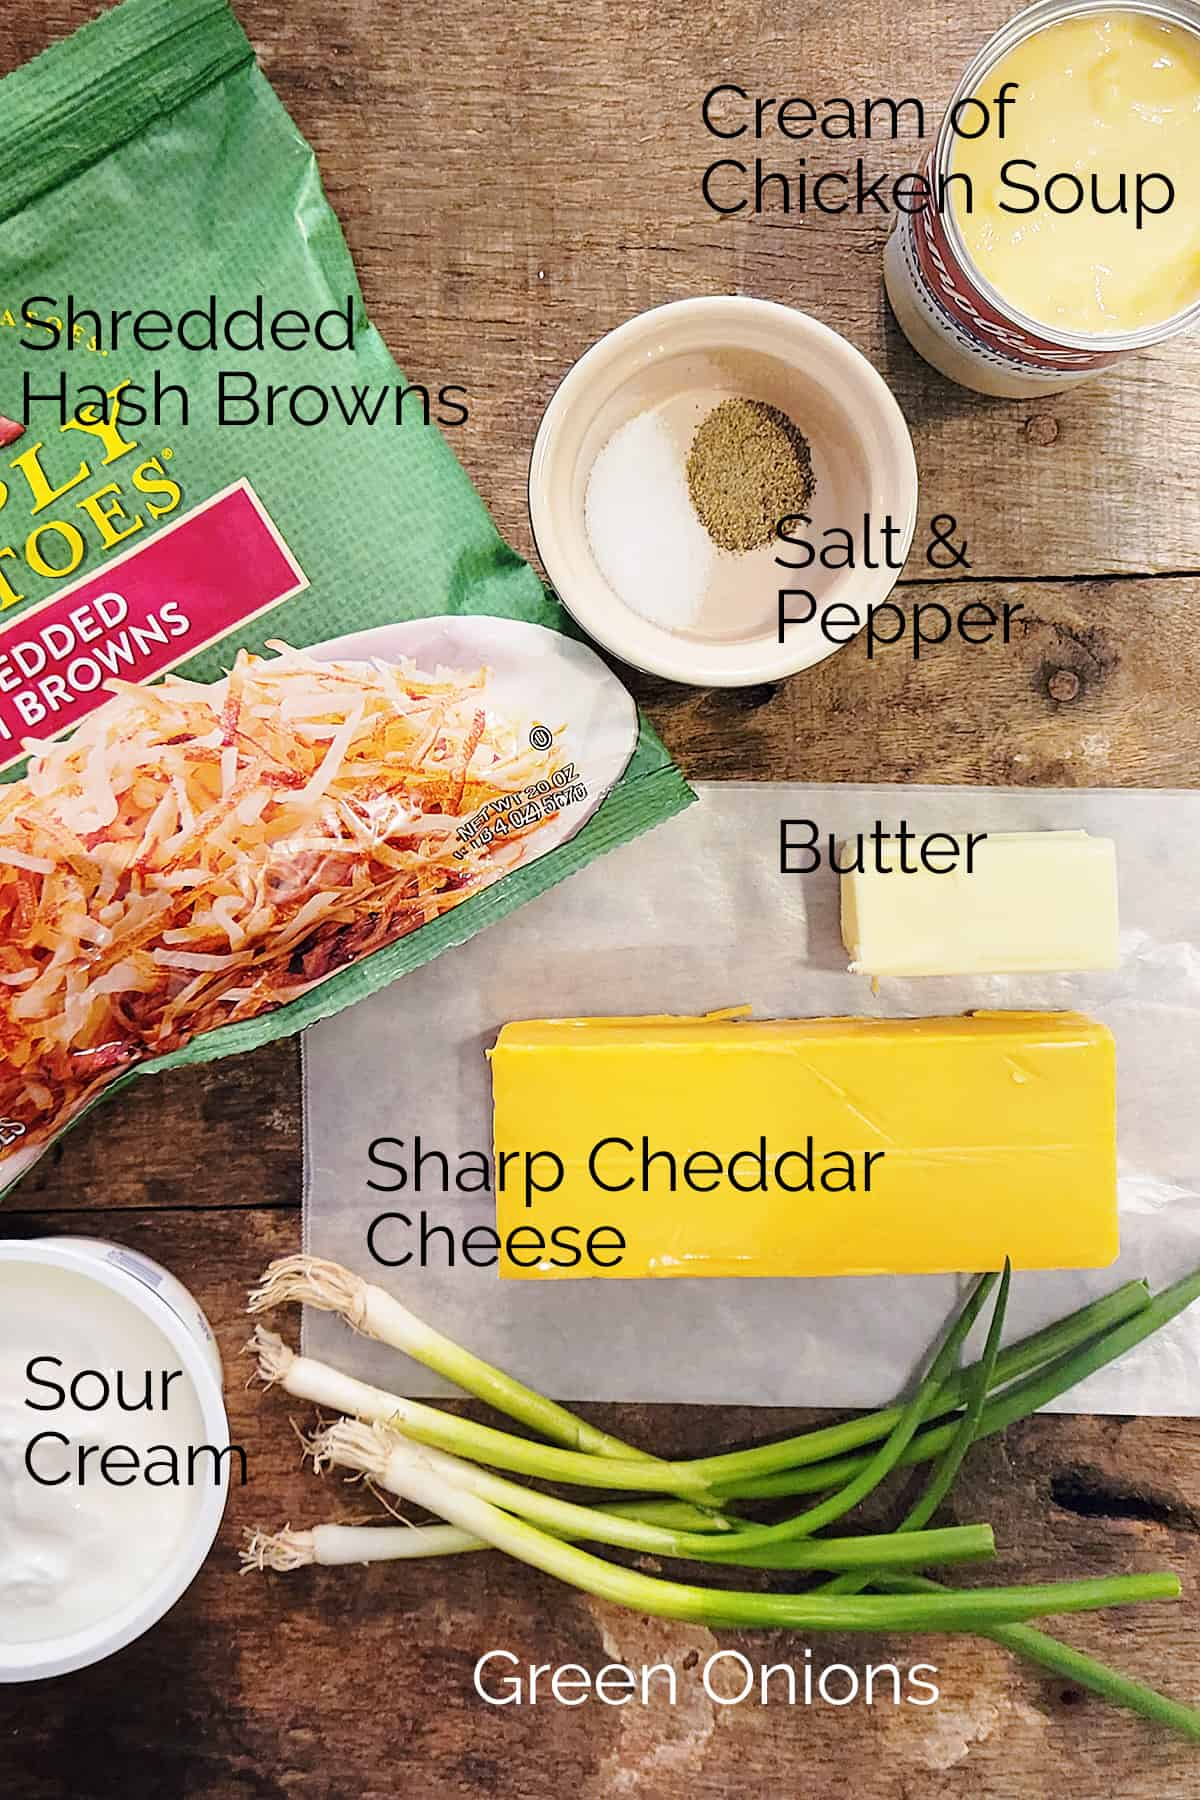 Ingredients needed for the recipe -- shredded hash browns, cream of chicken soup, salt, pepper, butter, cheese, green onions, sour cream.